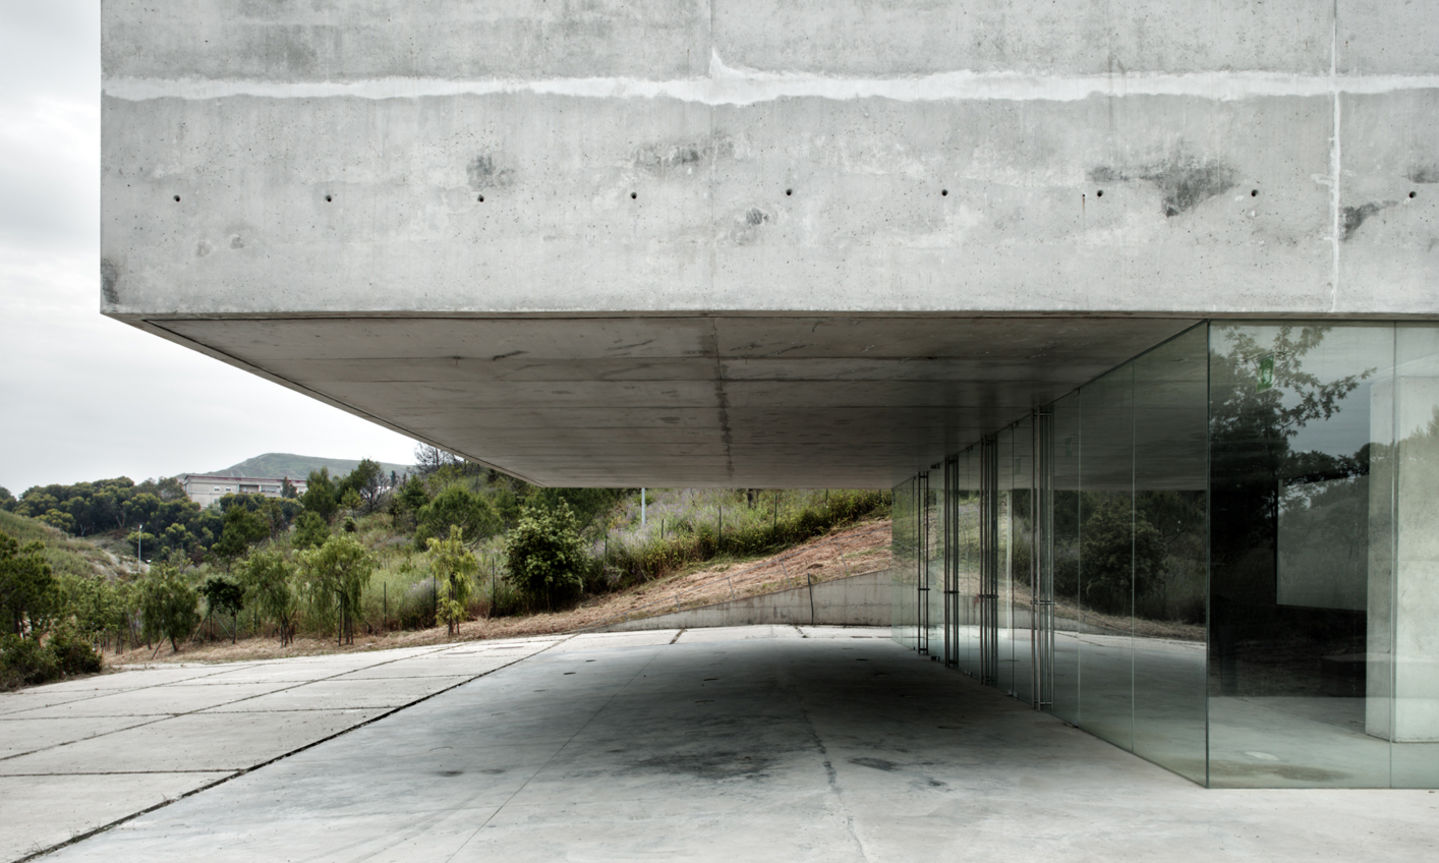 Pythagoras Museum in Crotone, Italy by OBR (Paolo Brescia and Tommaso Principi) (photo: Mariela Apollonio).